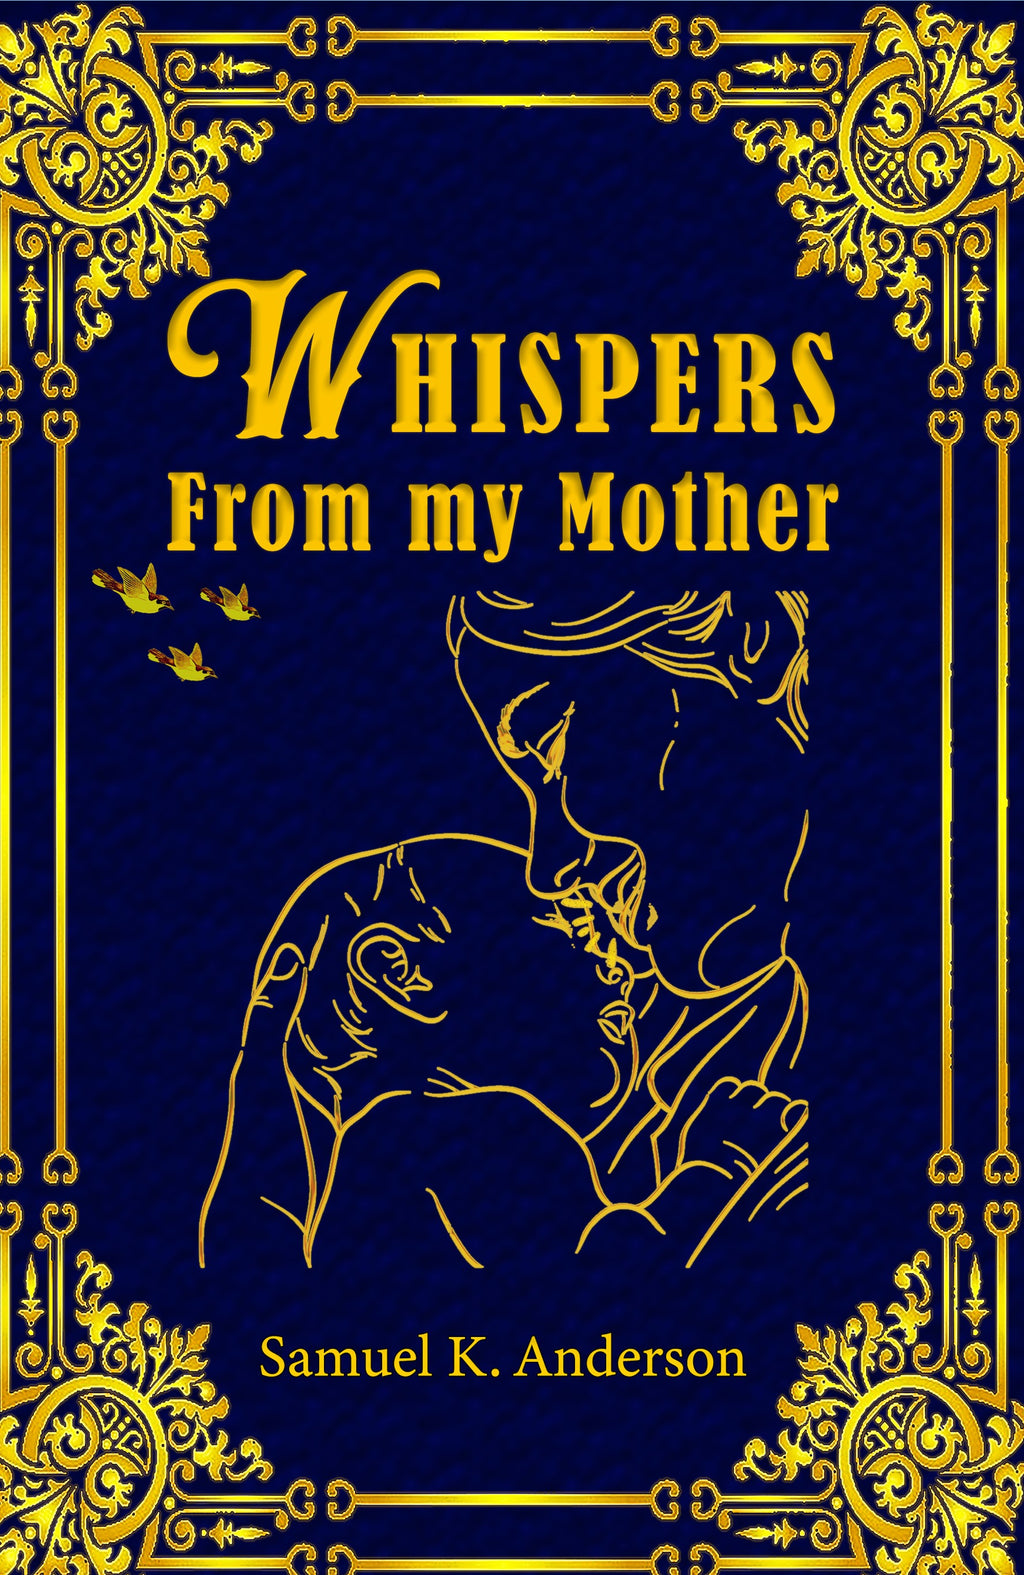 Whispers From My Mother (Paperback version)